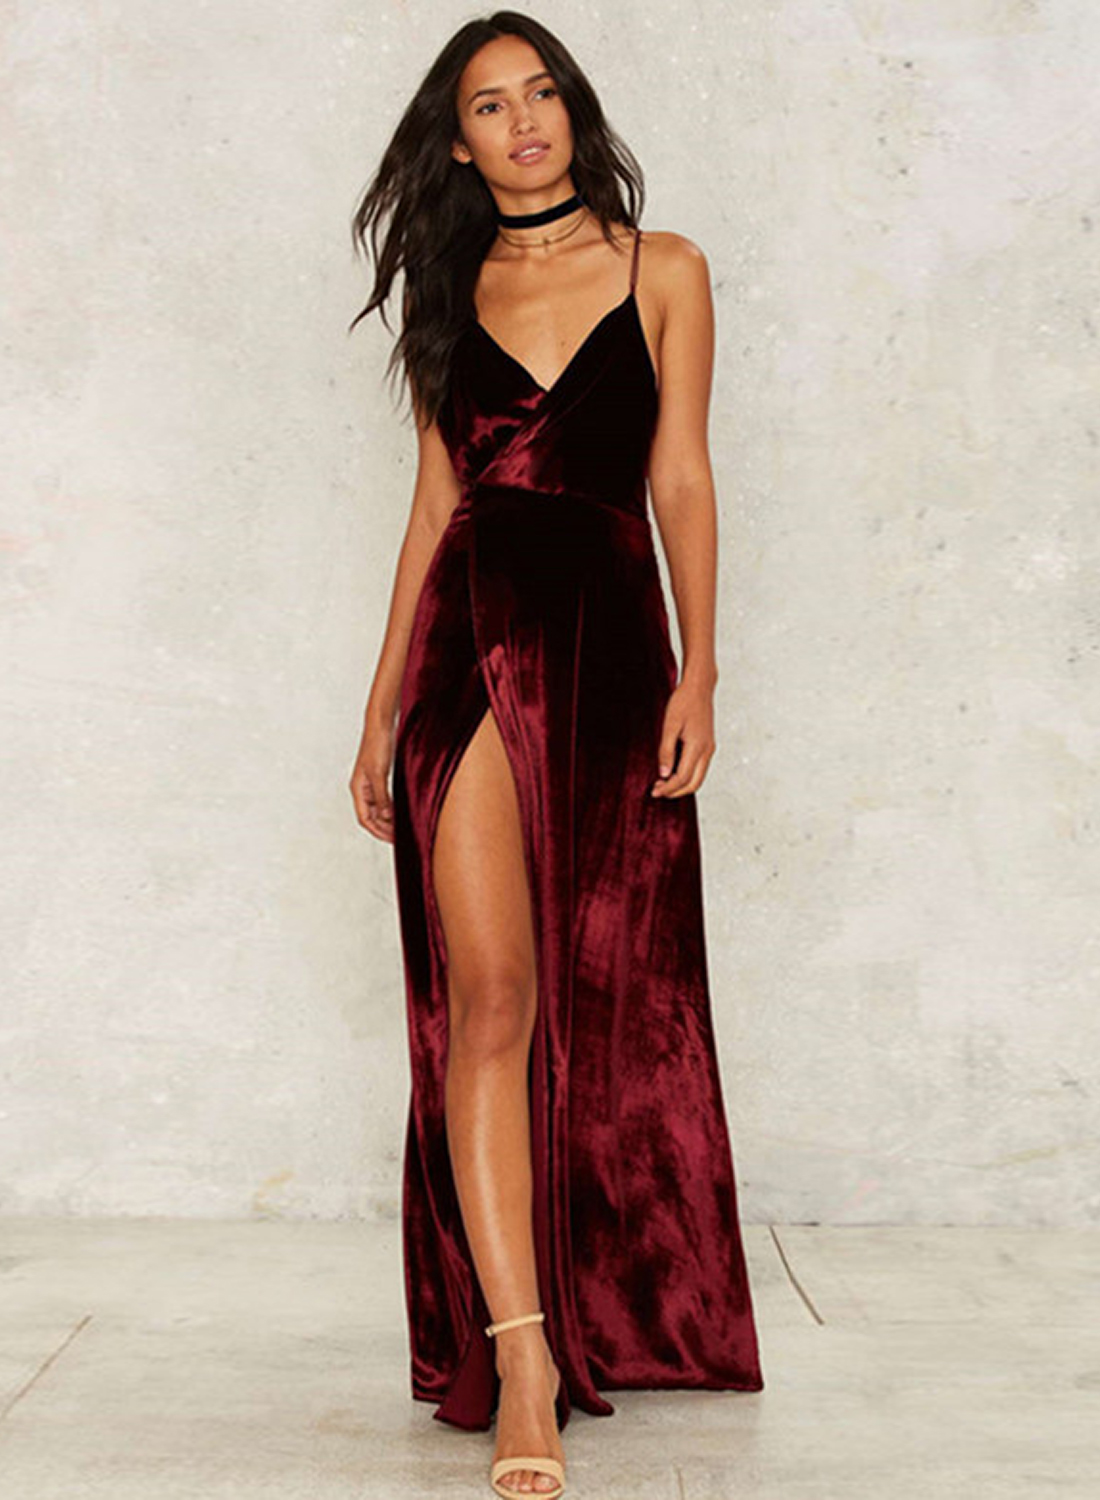 Fashion Spaghetti Strap Sleeveless Slit Maxi Dress Traveller Location. Loading  zoom. Fashion Spaghetti Strap Sleeveless Slit Maxi Dress